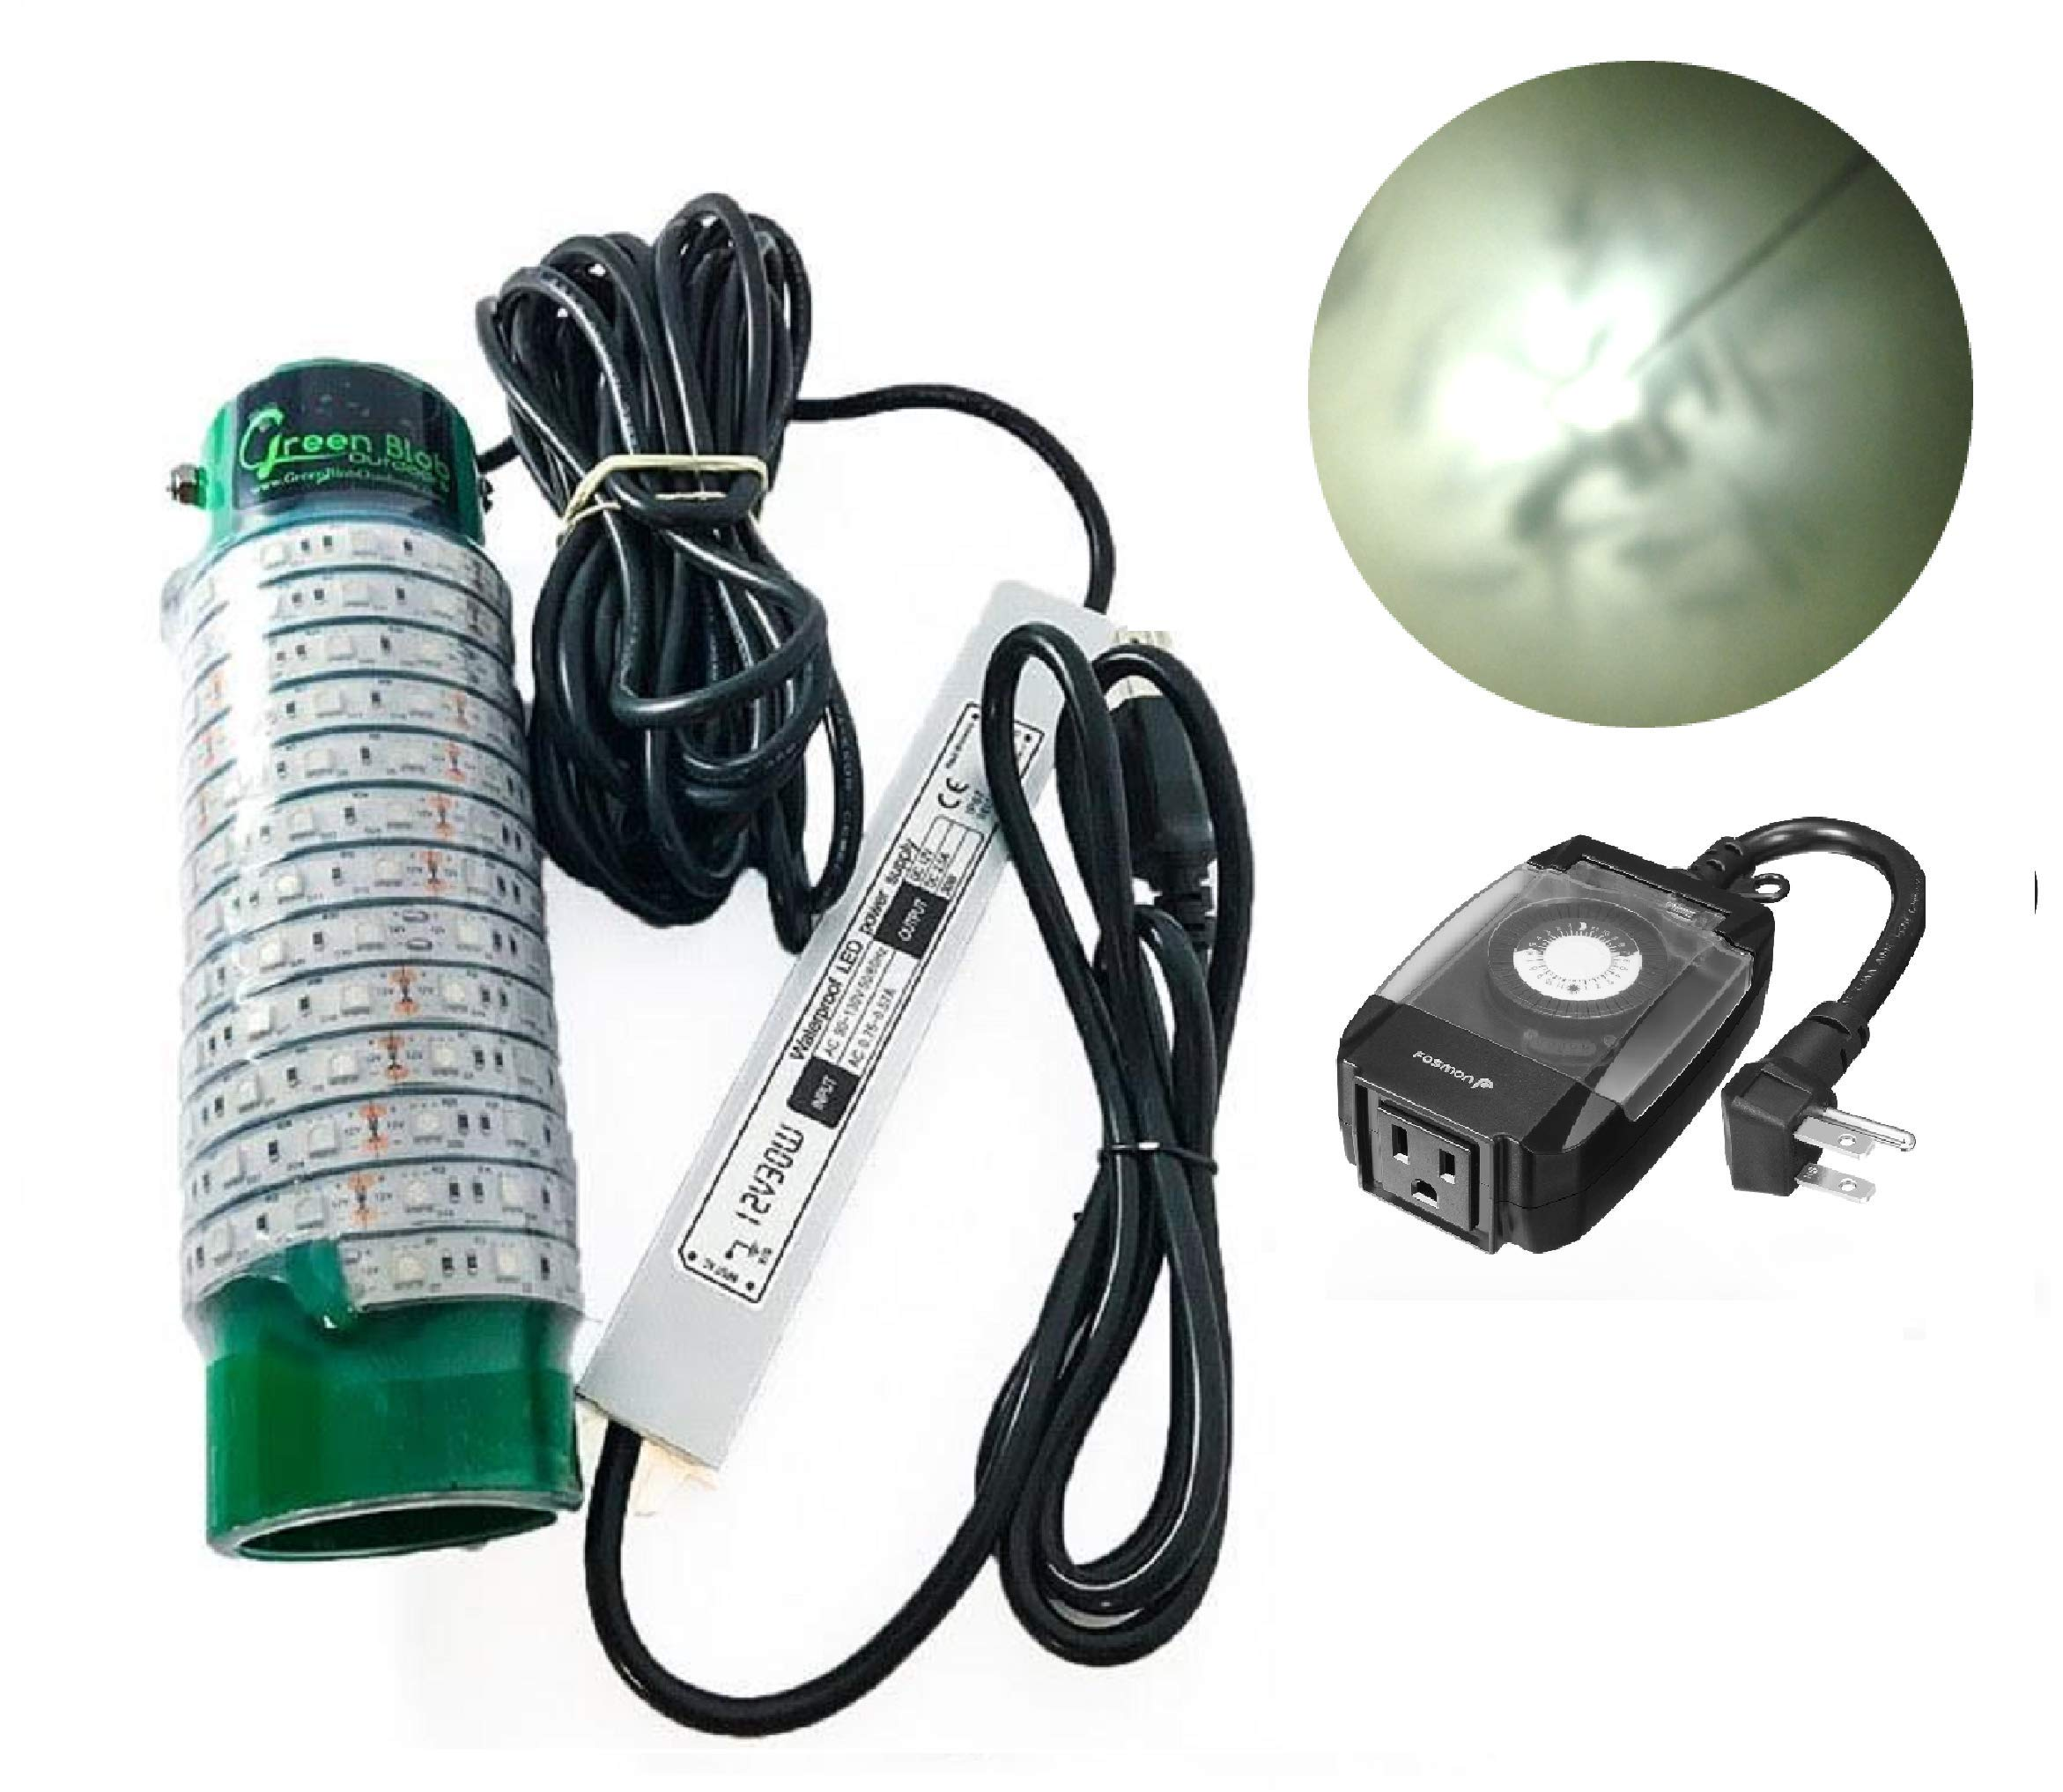 (Green, Blue, or White) Blob Underwater LED Night Fishing Light DOCK-7500 110volt AC (with Timer) 30ft Cord Fish Finding System, Bait rig, Fish Attractor, Ponds, Snook (White with Timer)